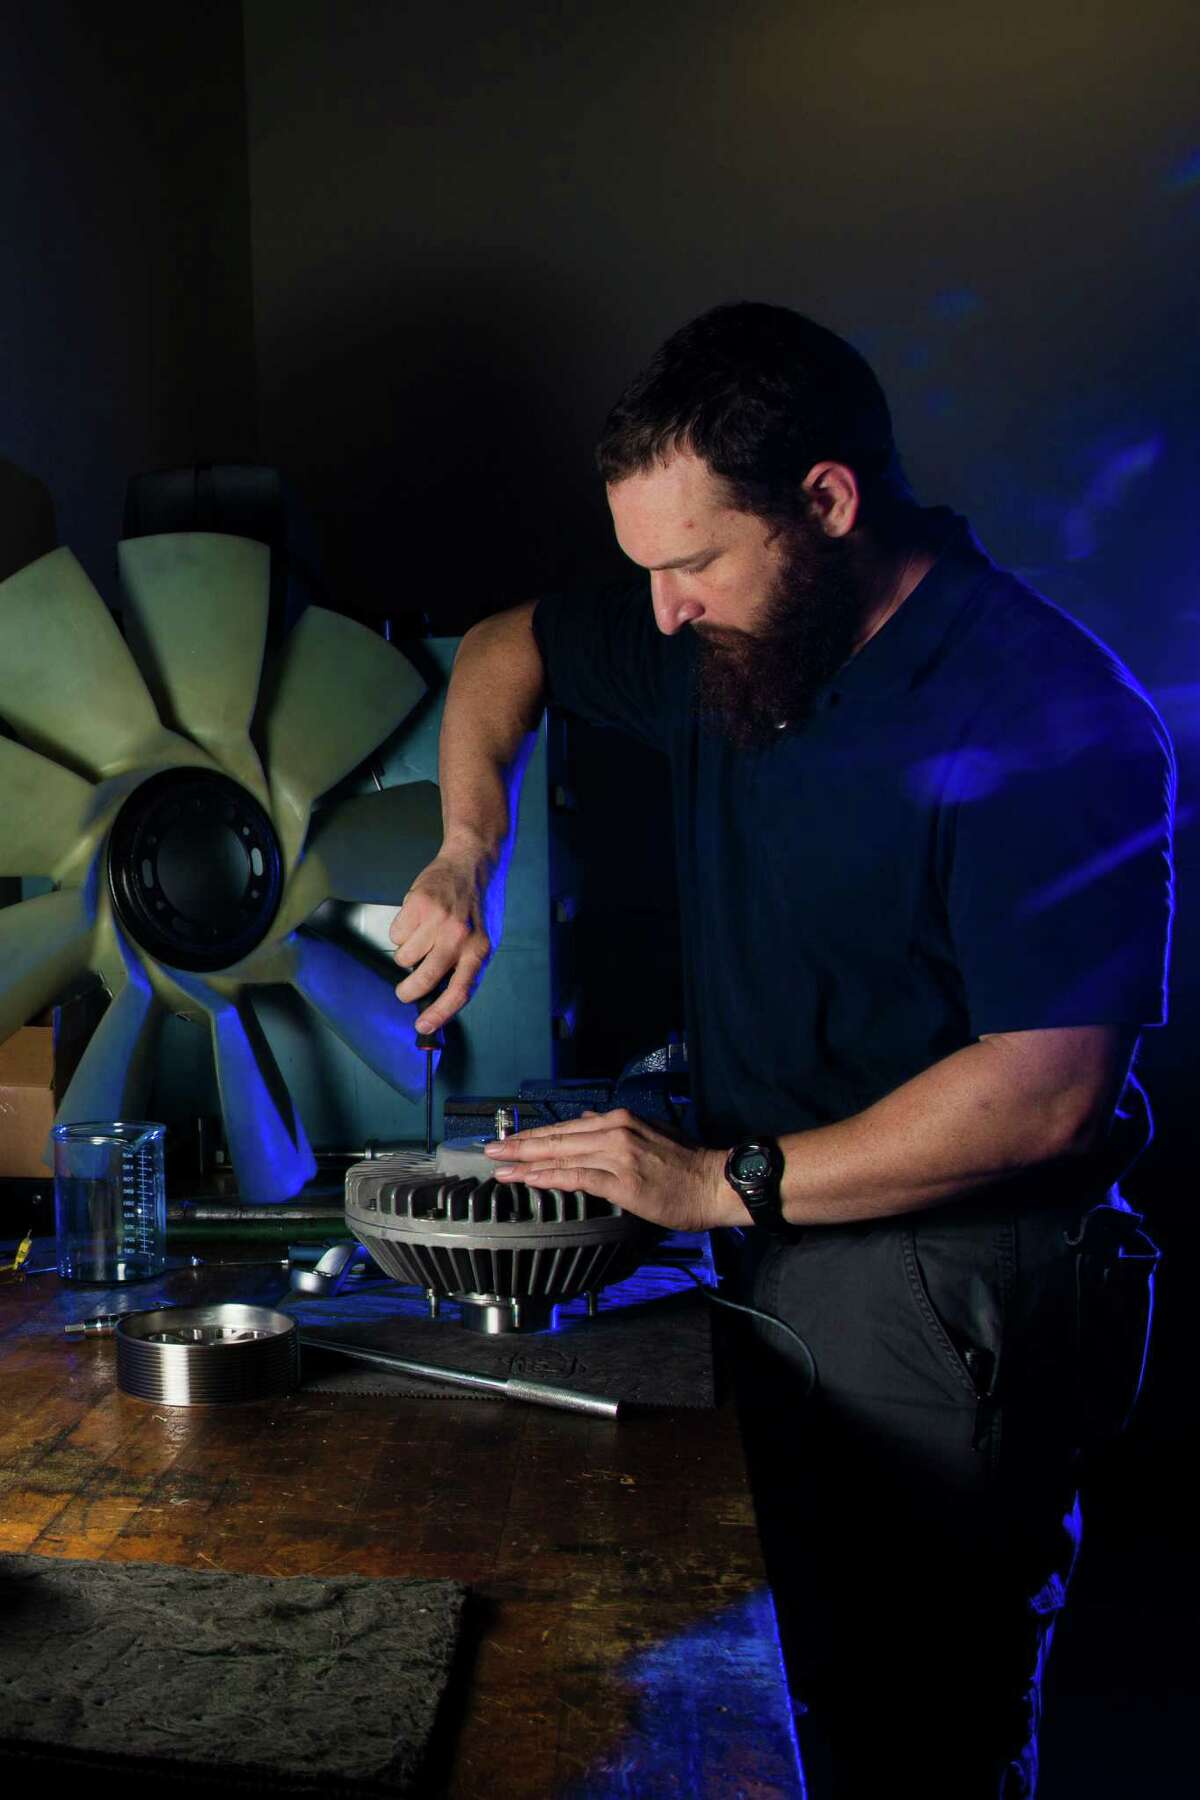 Orbital Traction test engineer Joe Bivona assembles a fan drive for a portrait, Thursday, May 19, 2016, in Houston. Orbital Traction makes devices that reduces diesel emissions when added to truck engines. ( Marie D. De Jesus / Houston Chronicle )